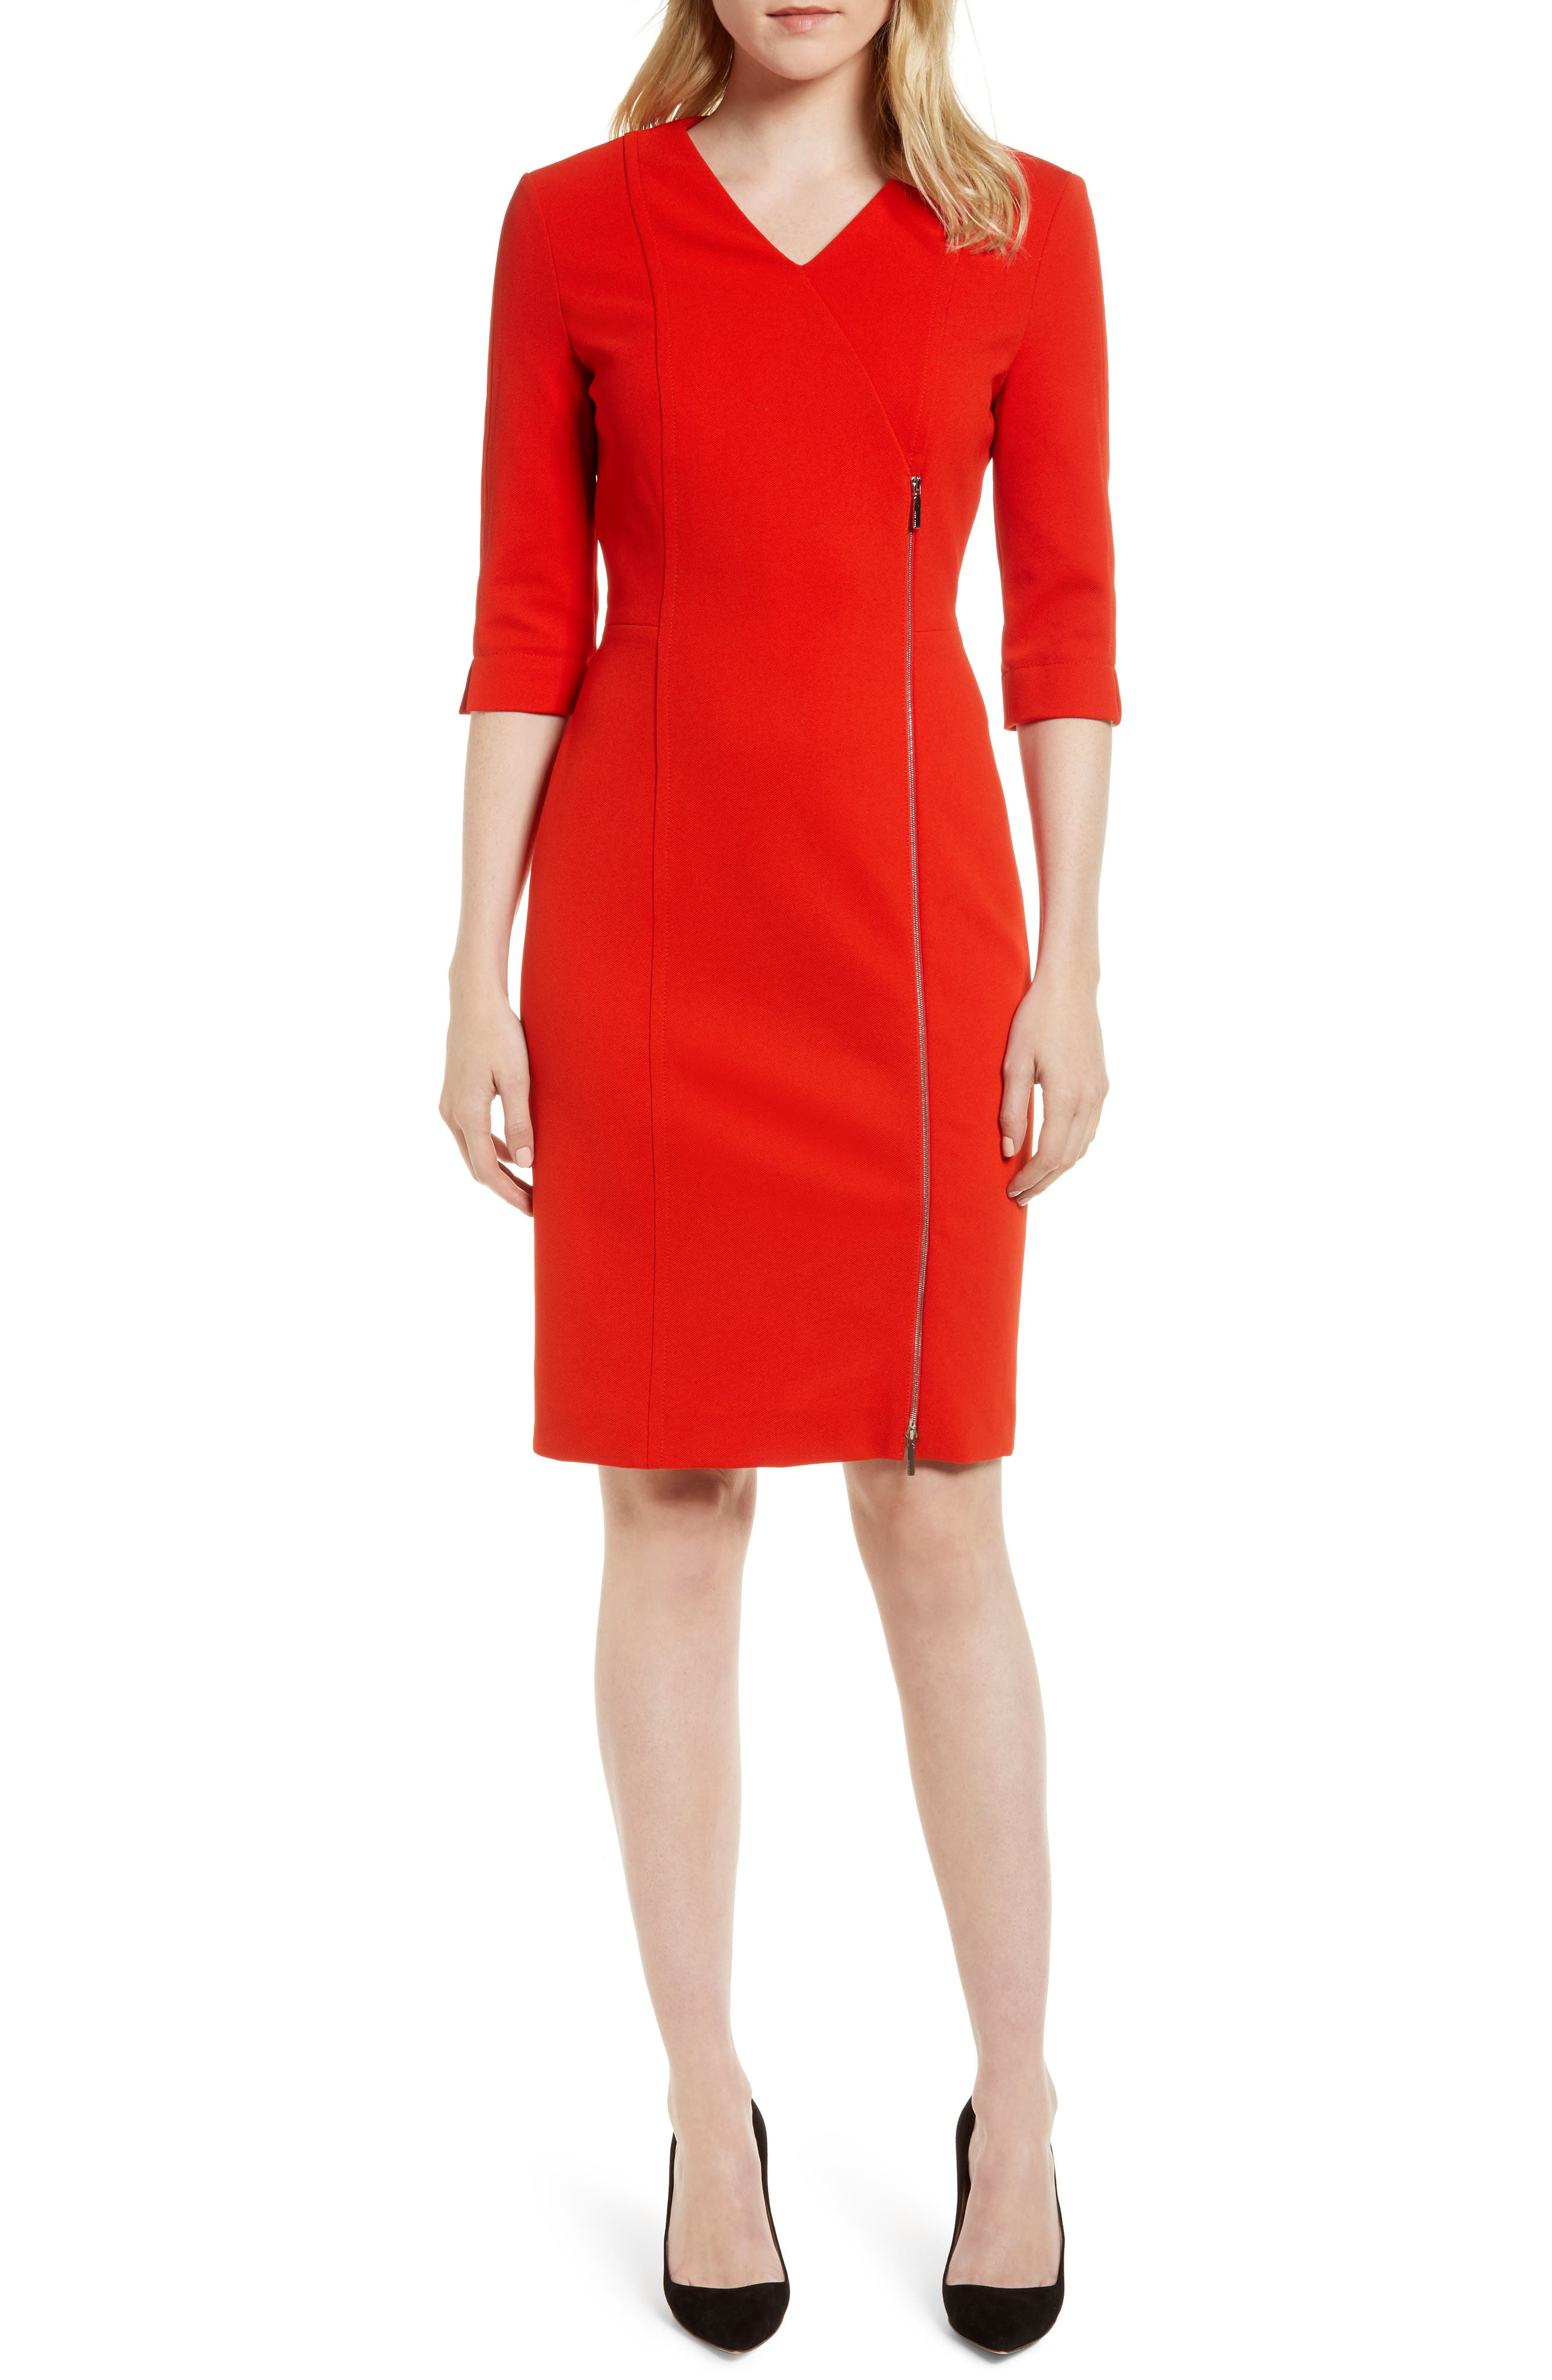 Deazema Twill Jersey Dress,                             Main thumbnail 1, color,                             824